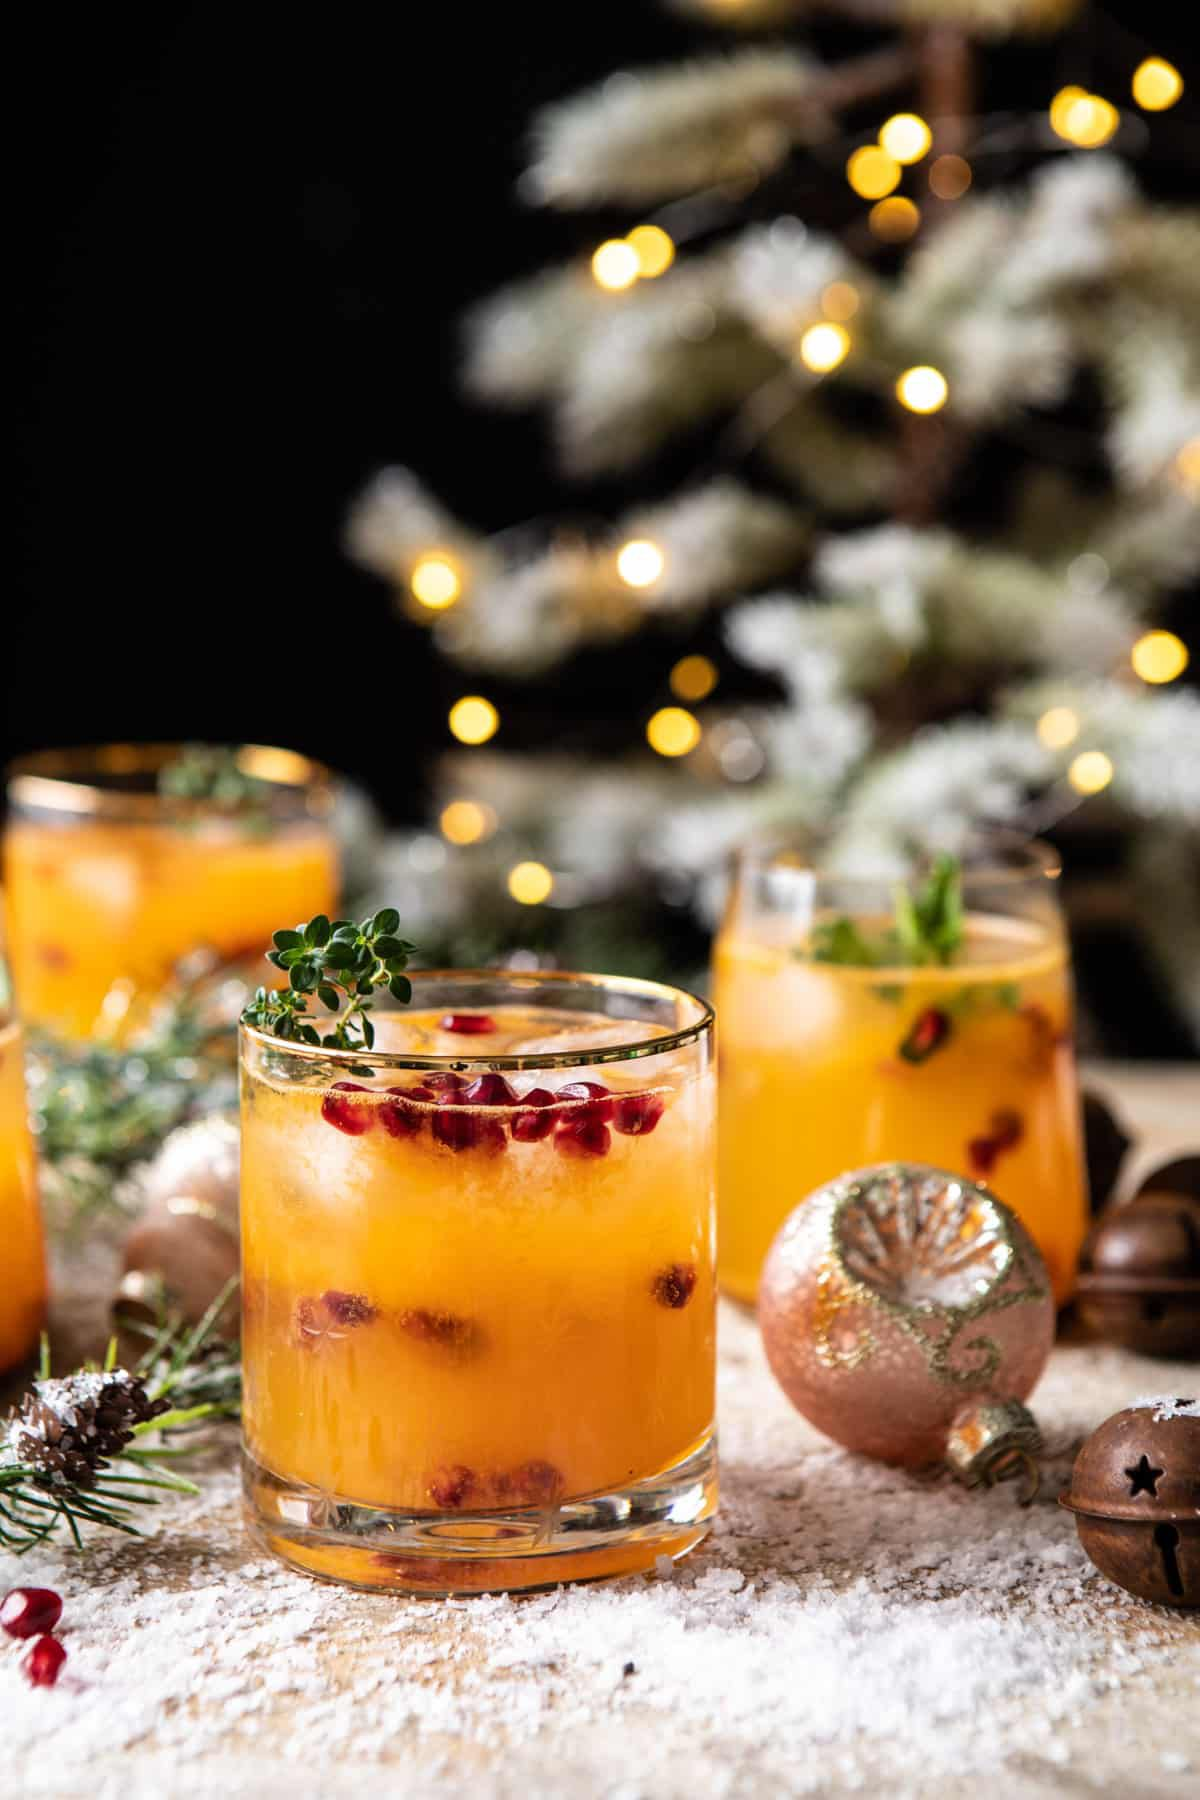 These Christmas Cocktail Recipes Are Guaranteed to Get You in the Holiday Spirit